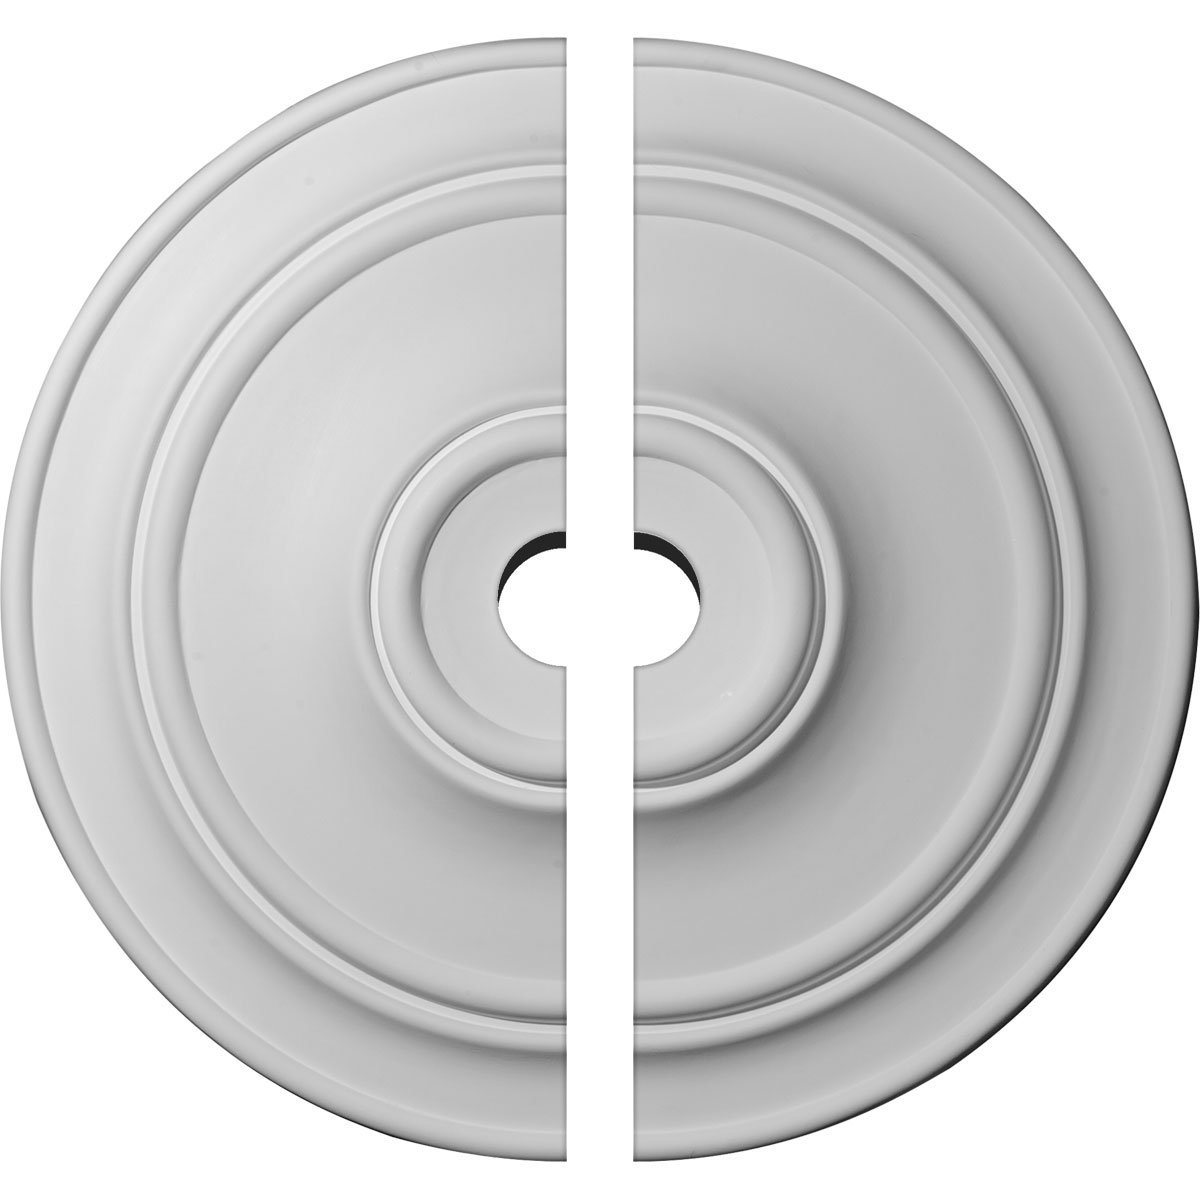 Ekena Millwork CM40CL2-05000 40 1/4''OD x 5''ID x 3 1/8''P Small Classic Ceiling Medallion, Fits Canopies up to 10'', 2 Piece